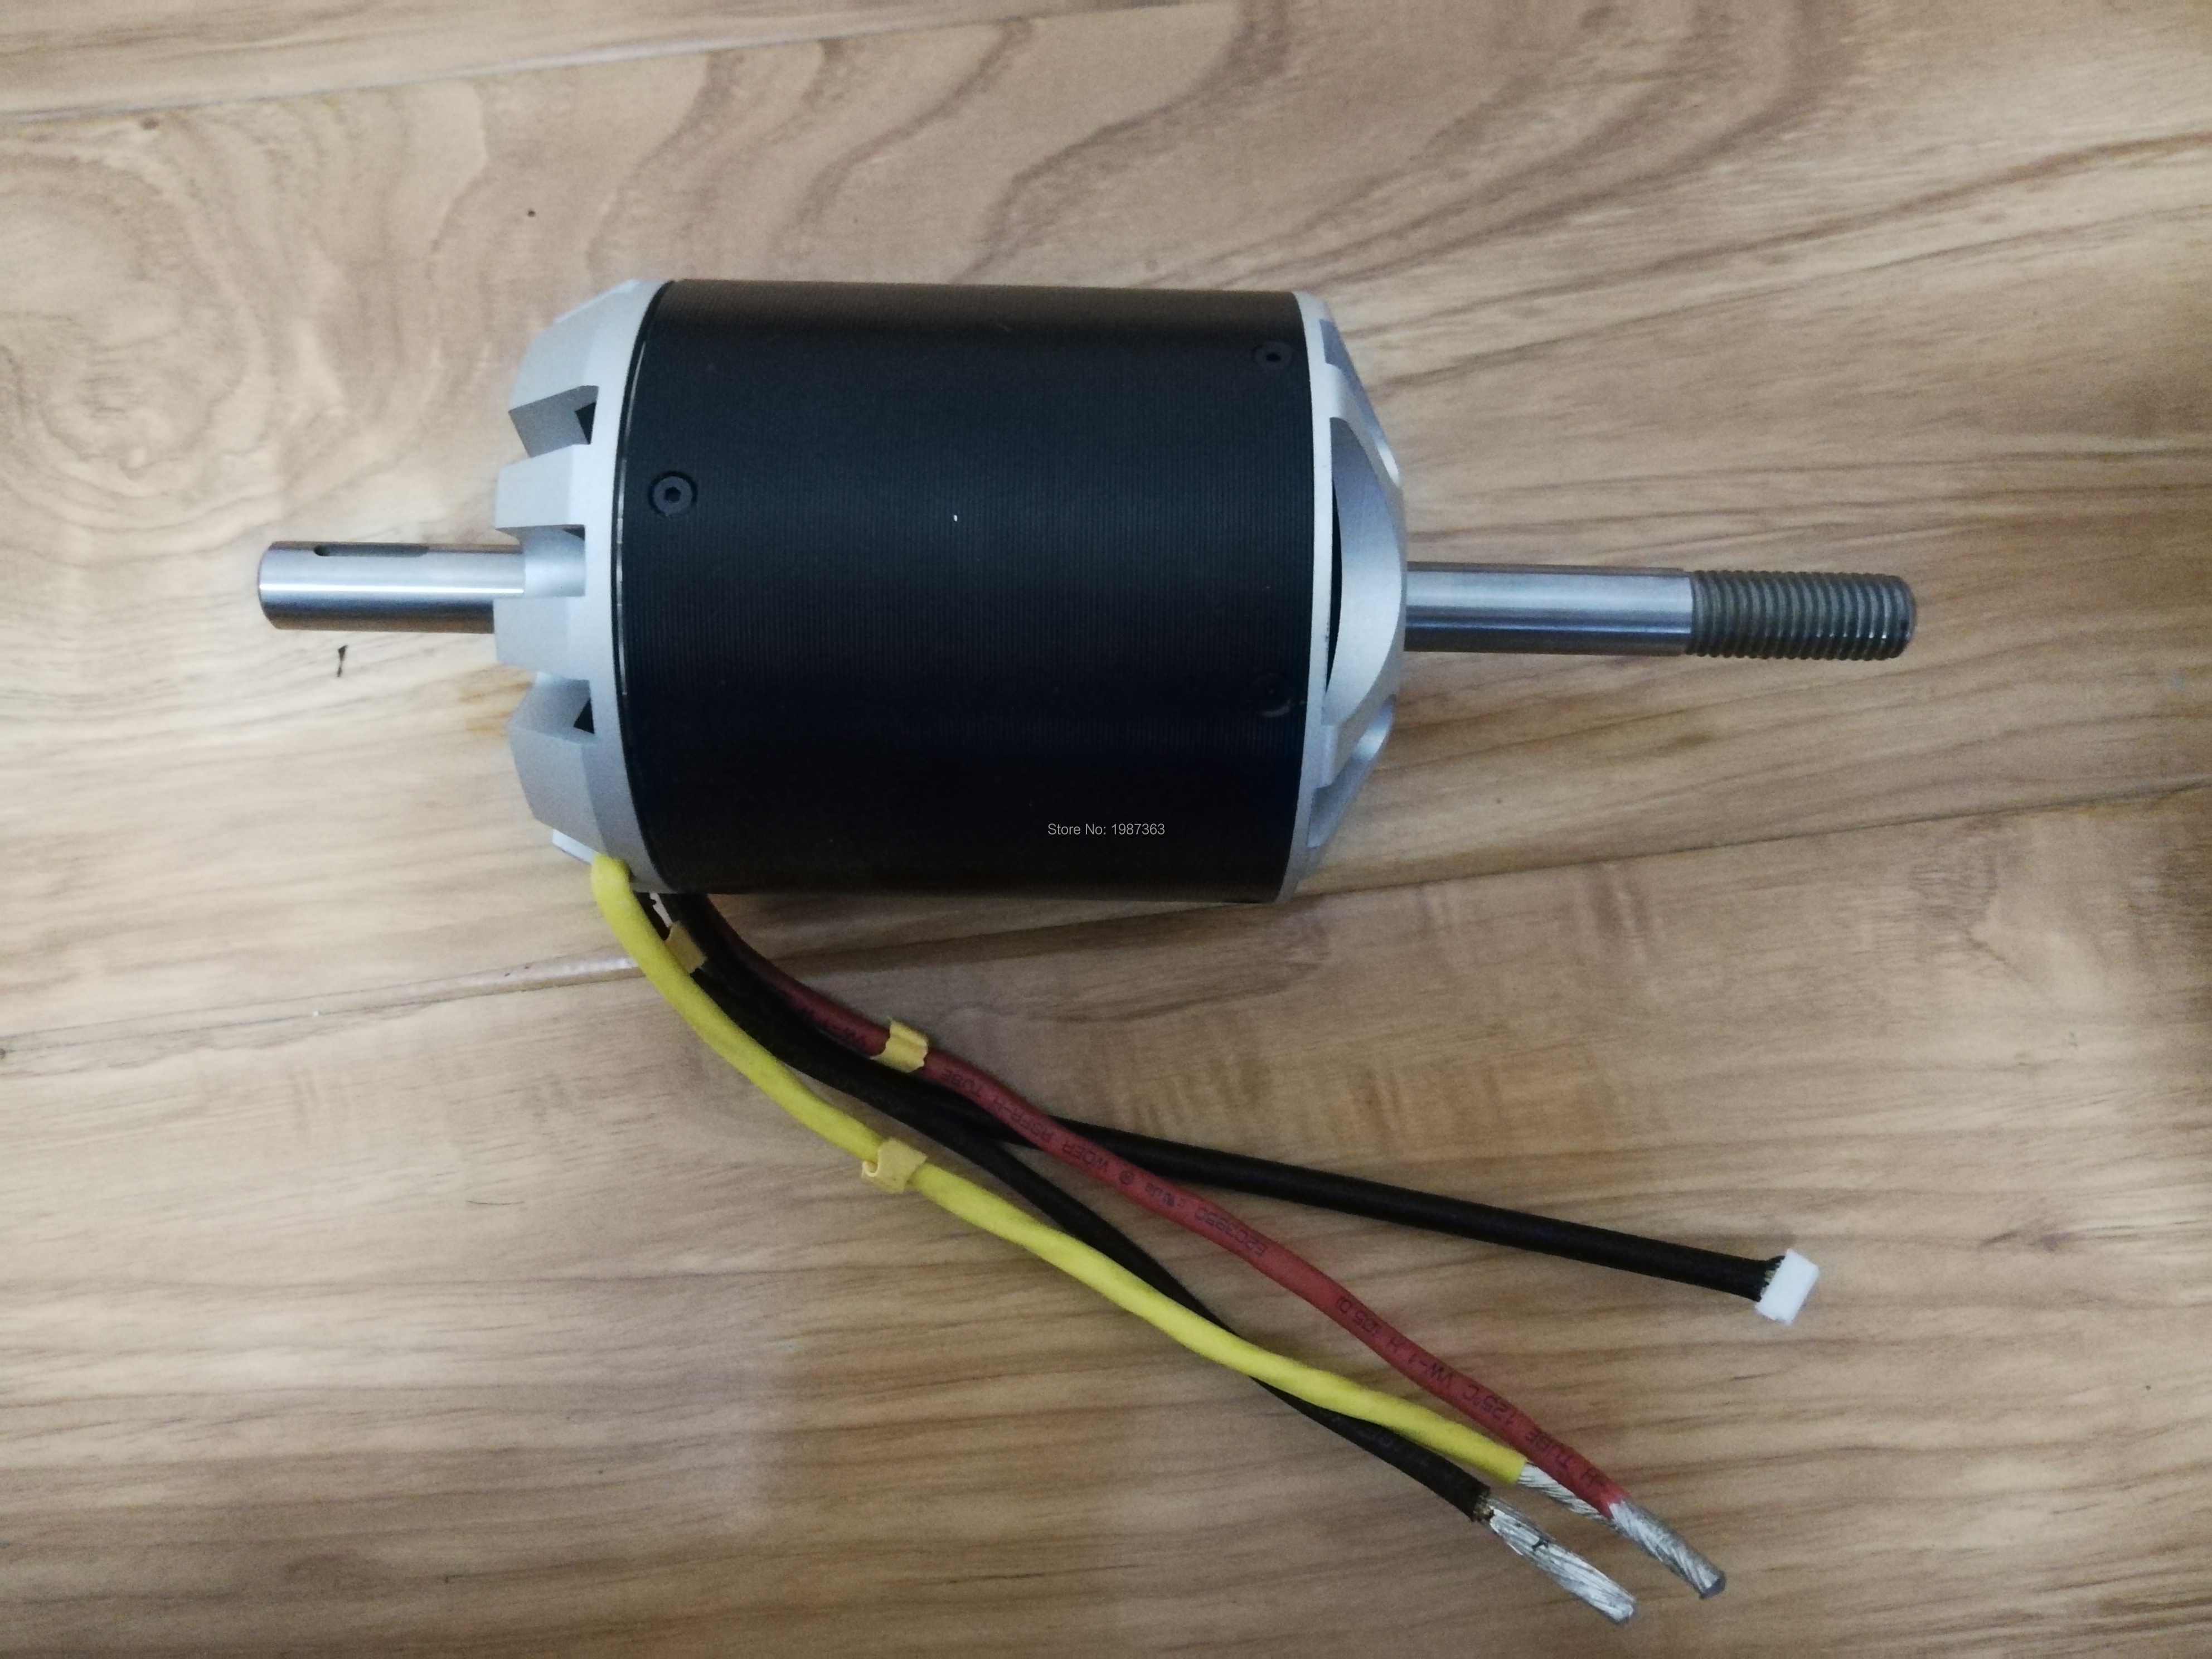 7kw Brushless DC Motor Sensored For Electric Go-kart,electric Skateboard,electric Bike And Boat,robot,industry Machine Ect